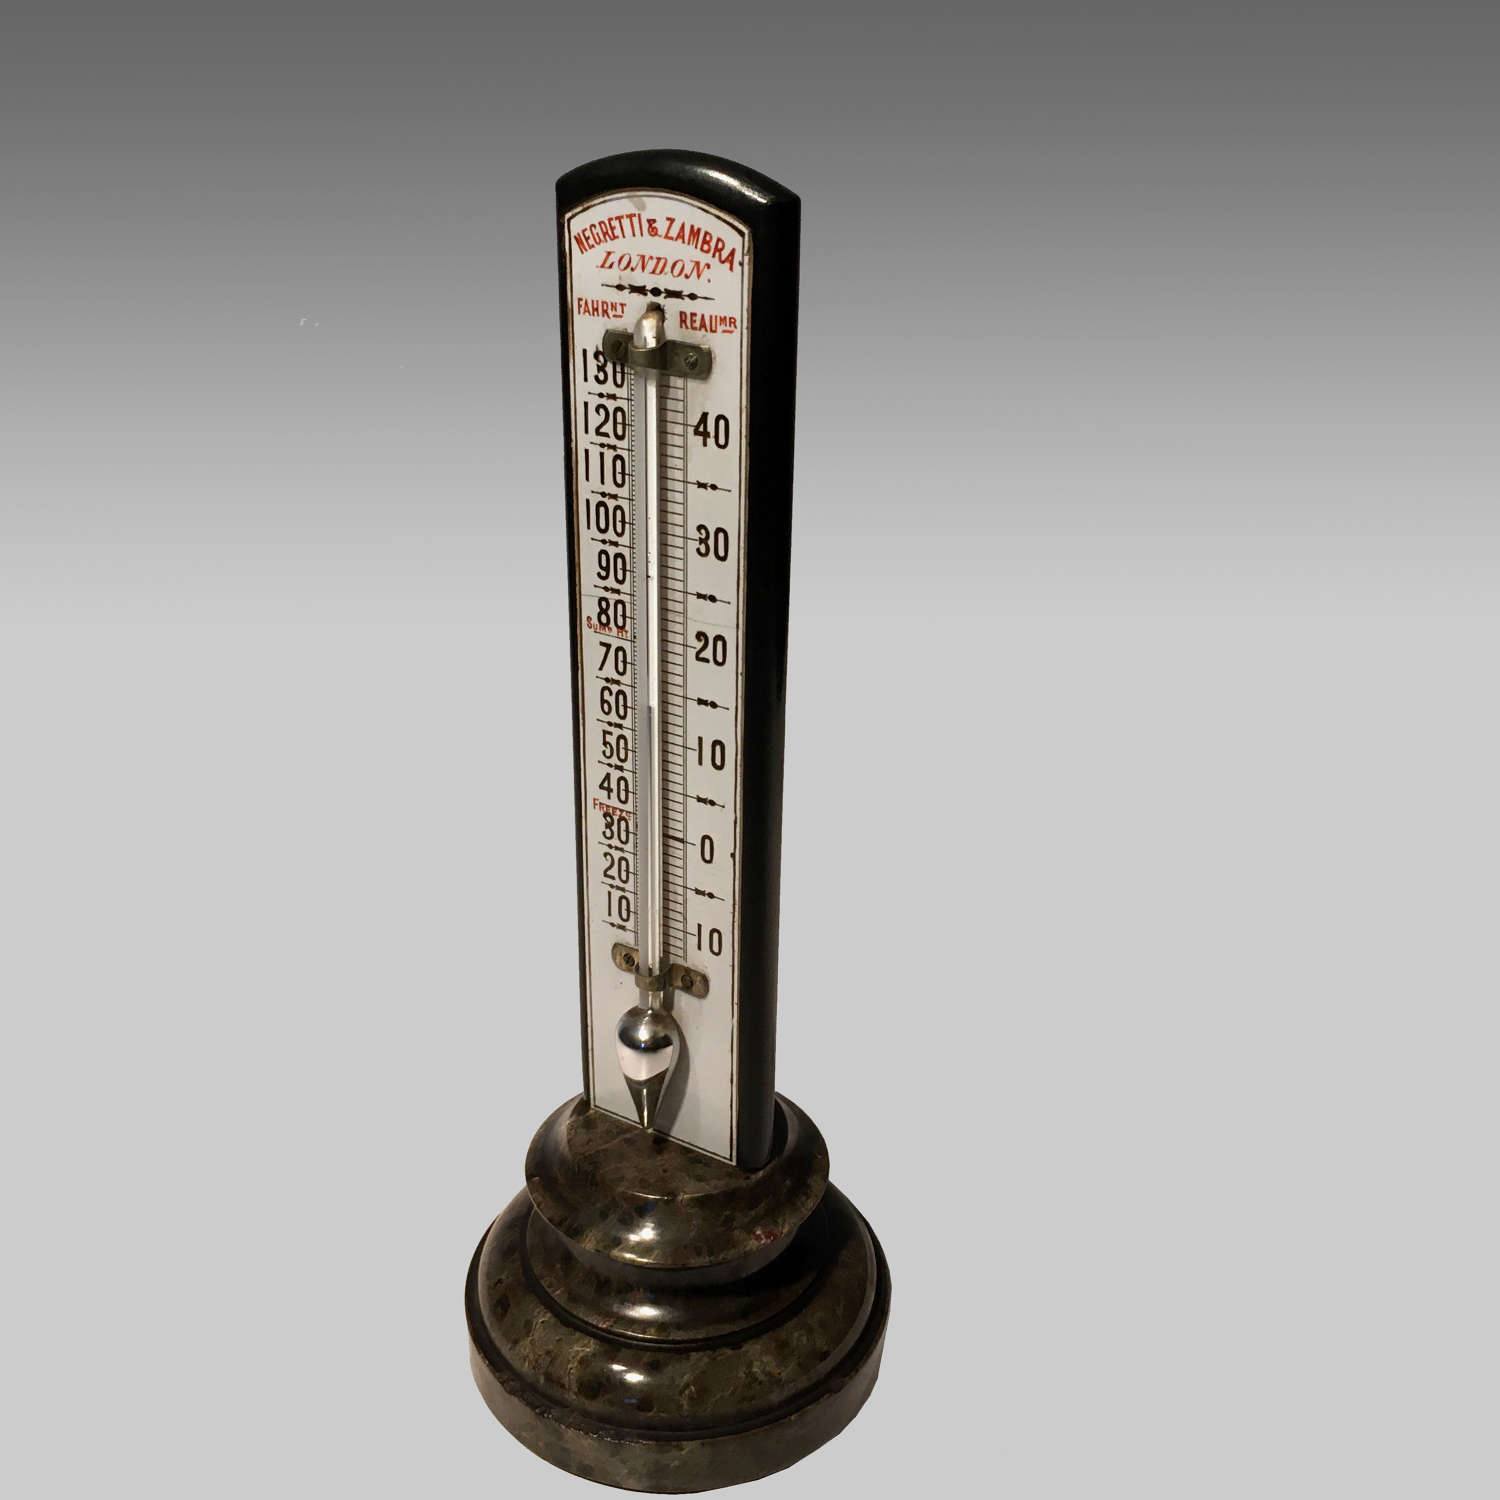 19th century Negretti and Zambra thermometer